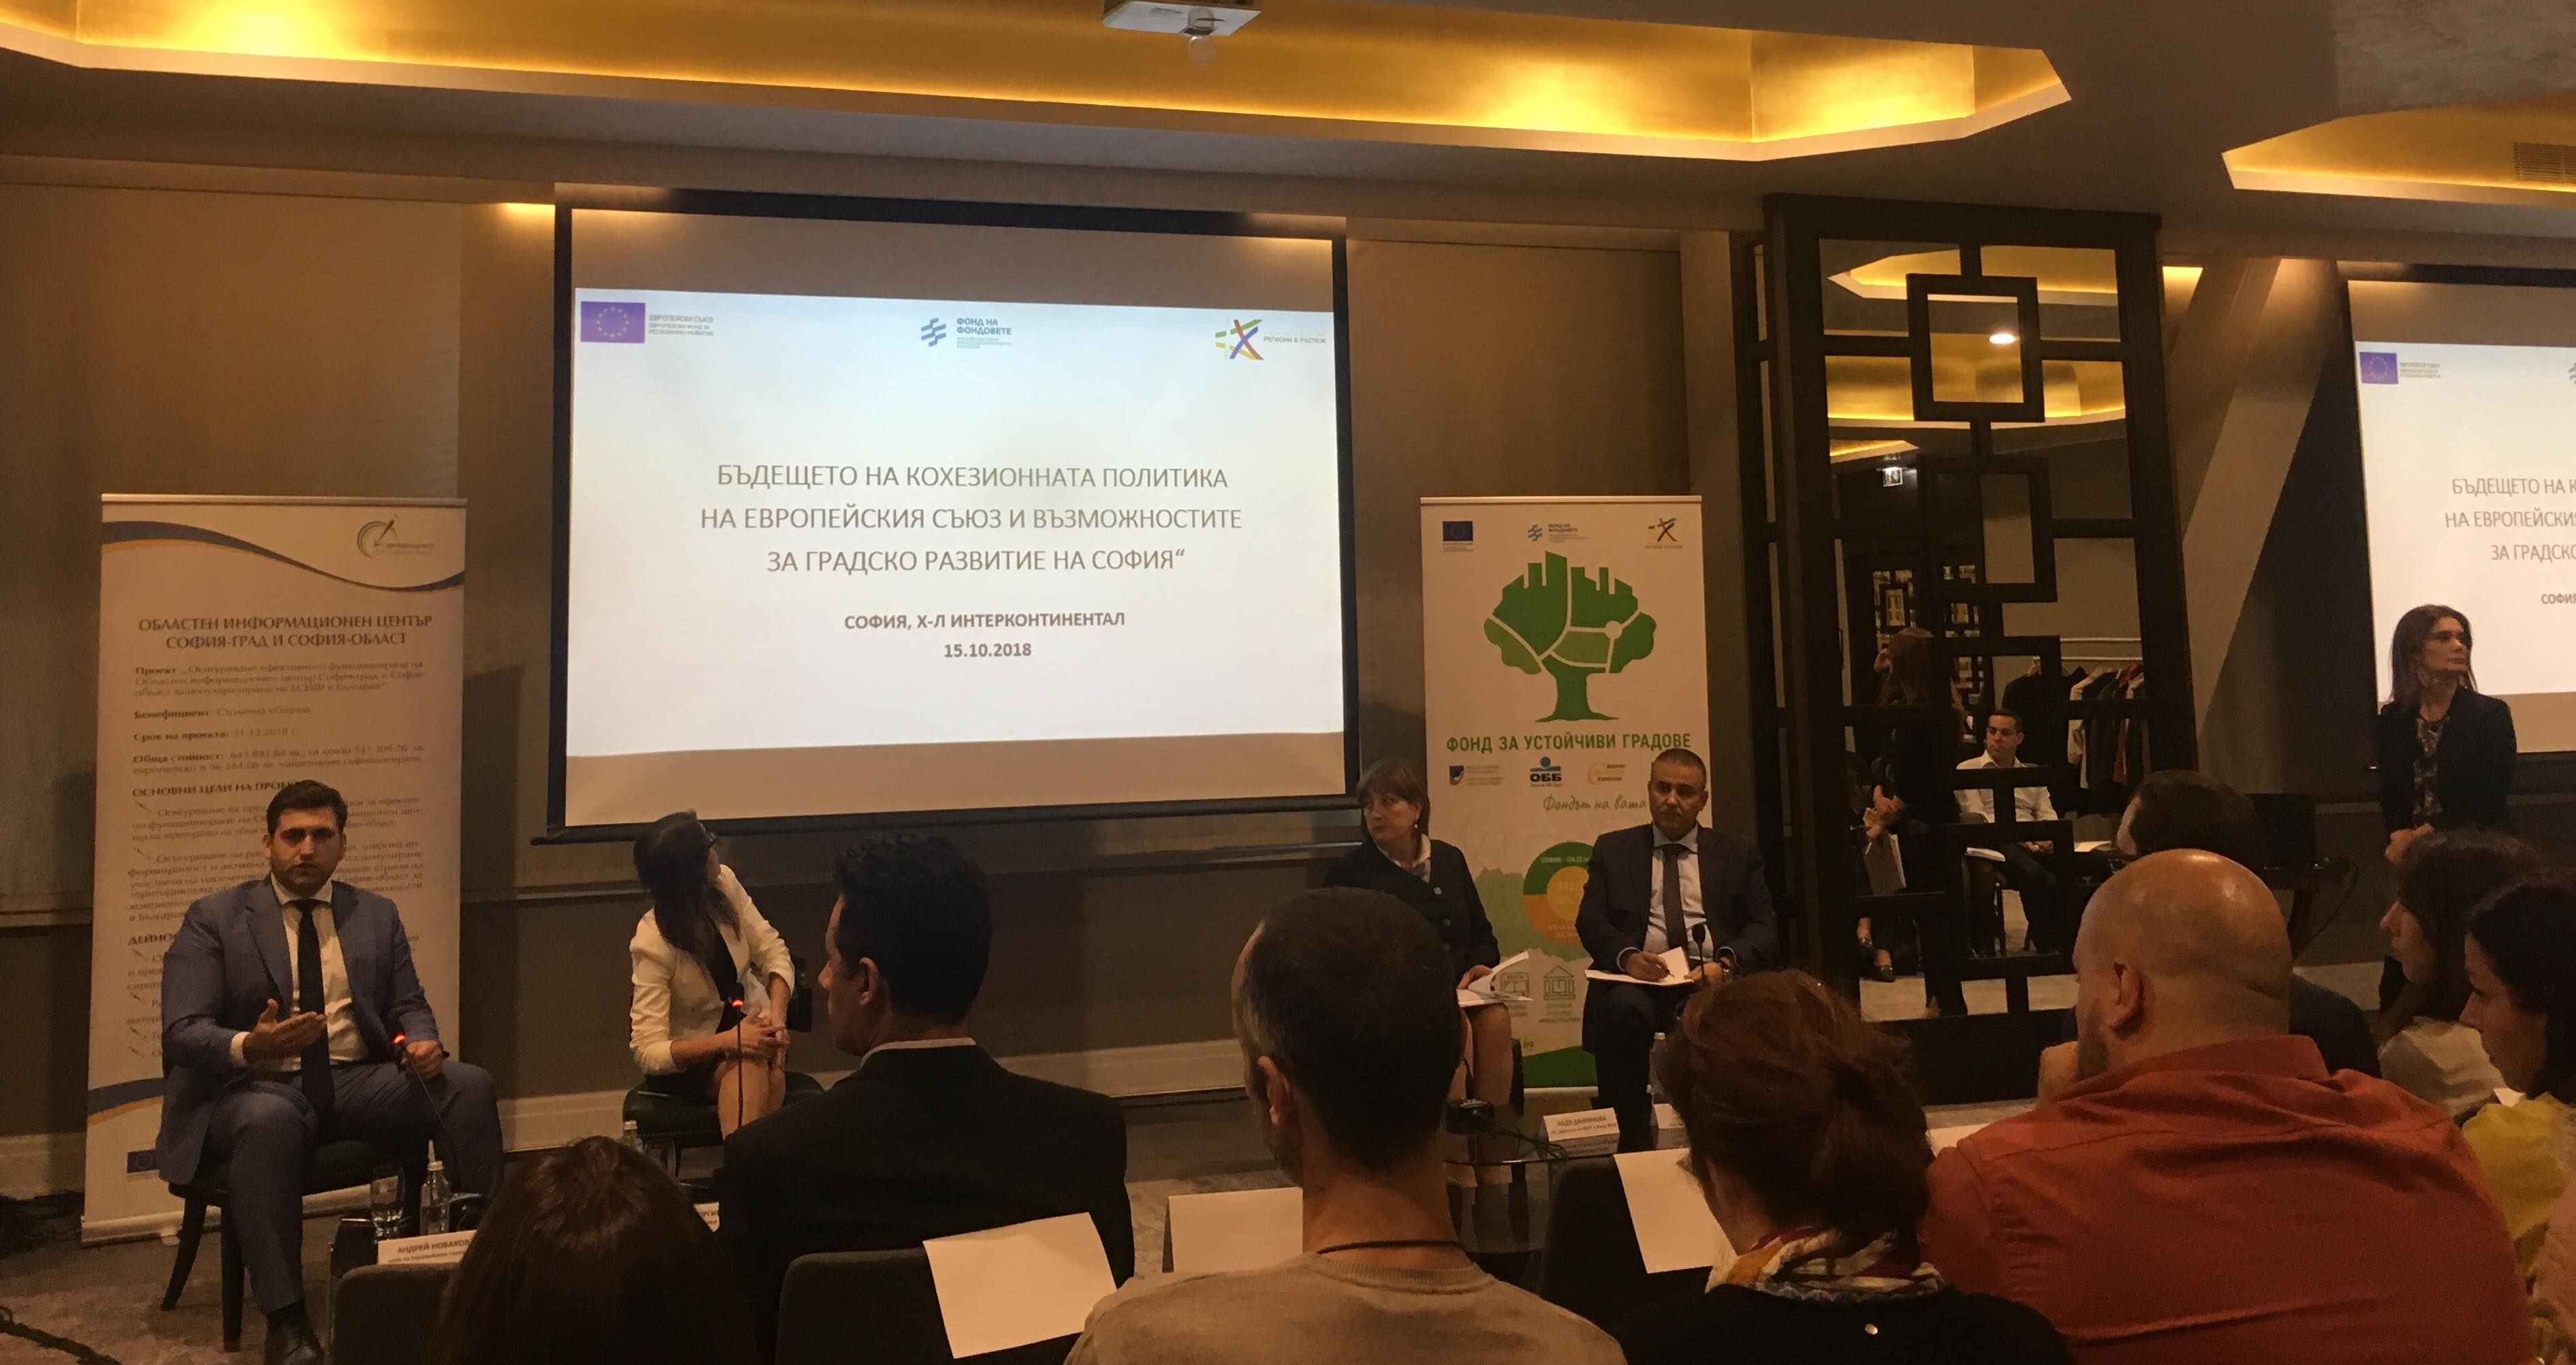 Andrey Novakov, Chief Negotiator for EU Cohesion Policy after 2020: I insist for additional 40 billion euro for Cohesion for the next seven-year period